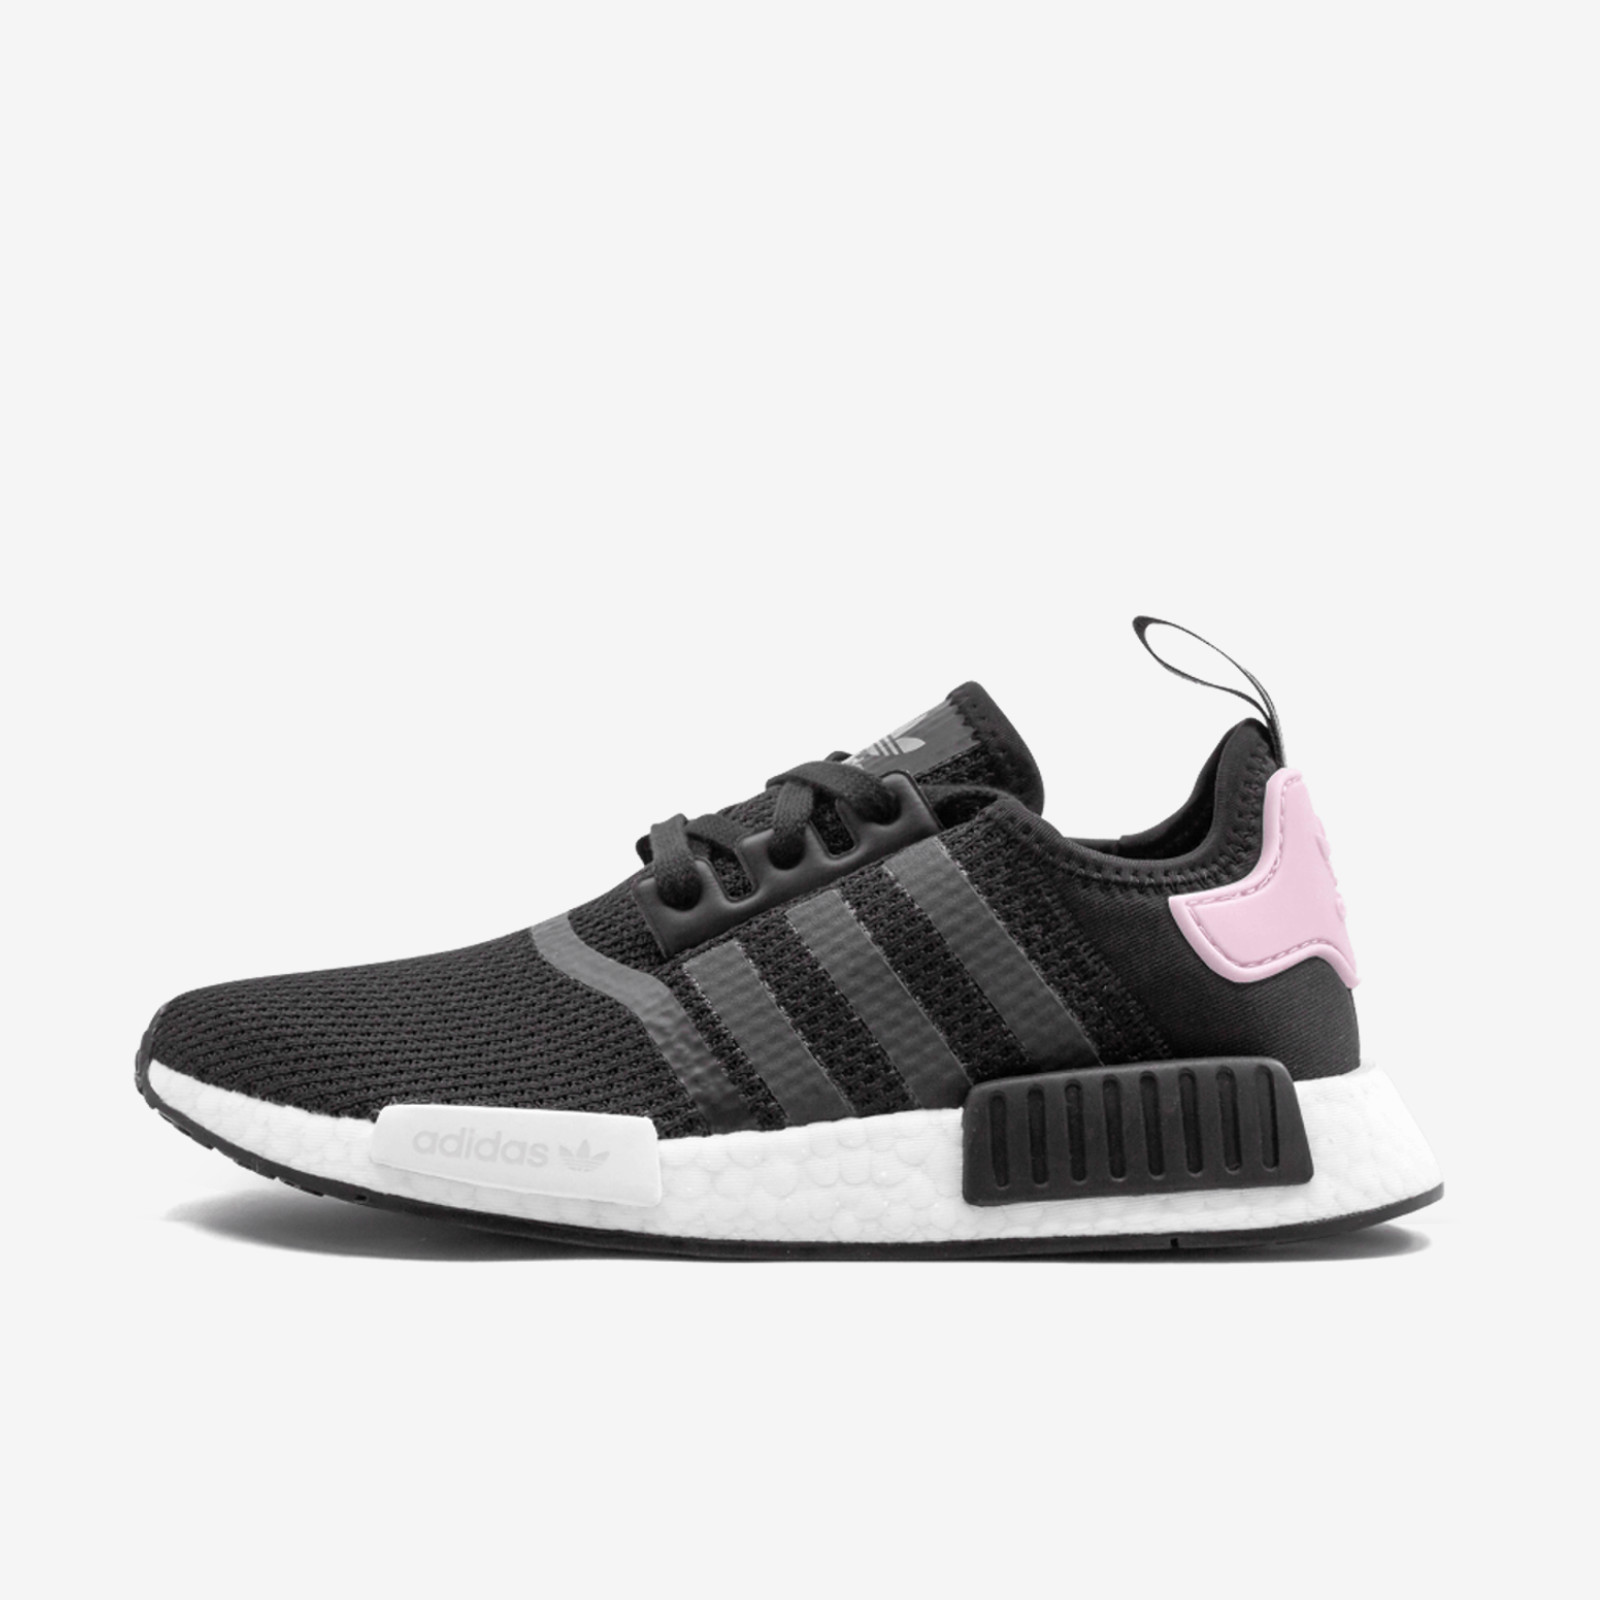 Details about ADIDAS NMD R1 B37649 CORE BLACK FOOTWEAR WHITE CLEAN PINK